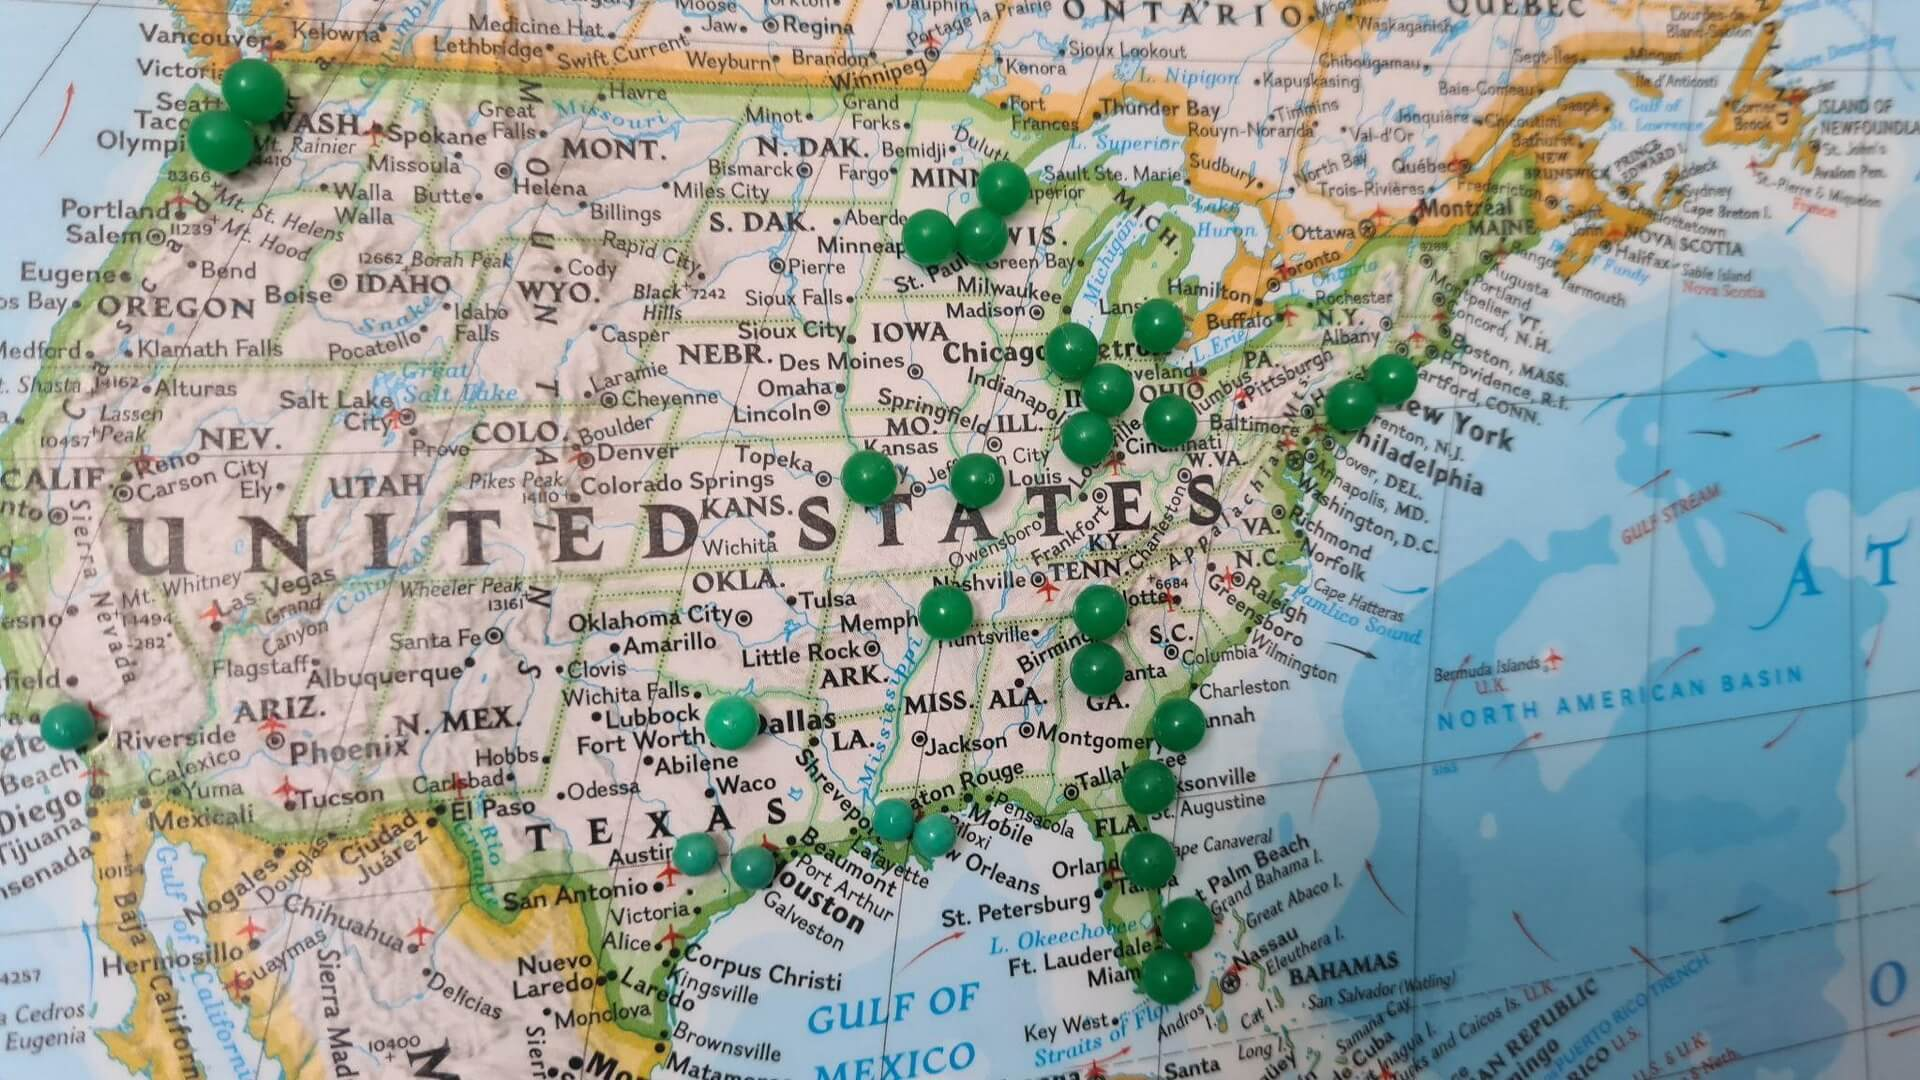 target an entire state in the United States